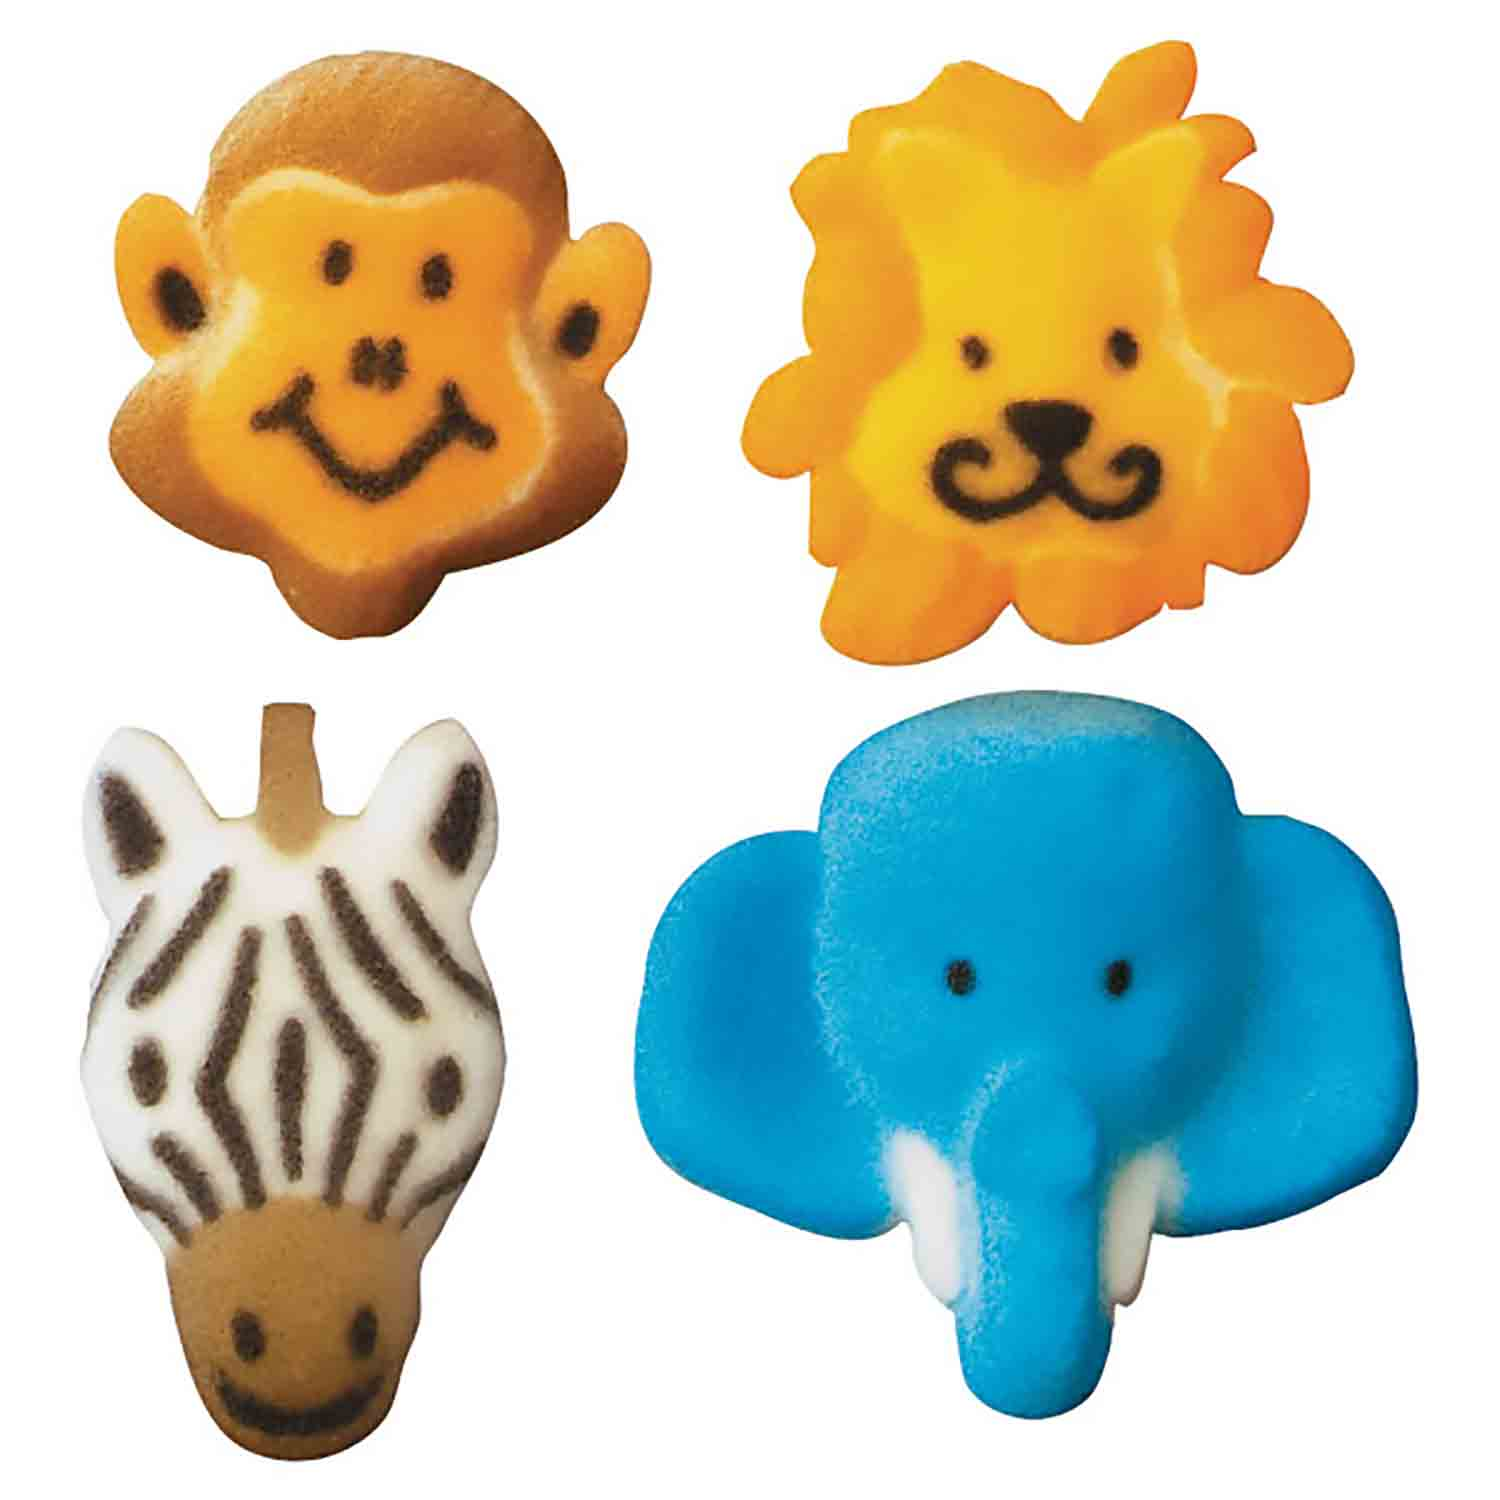 Dec-Ons® Molded Sugar - Jungle Animal Assortment